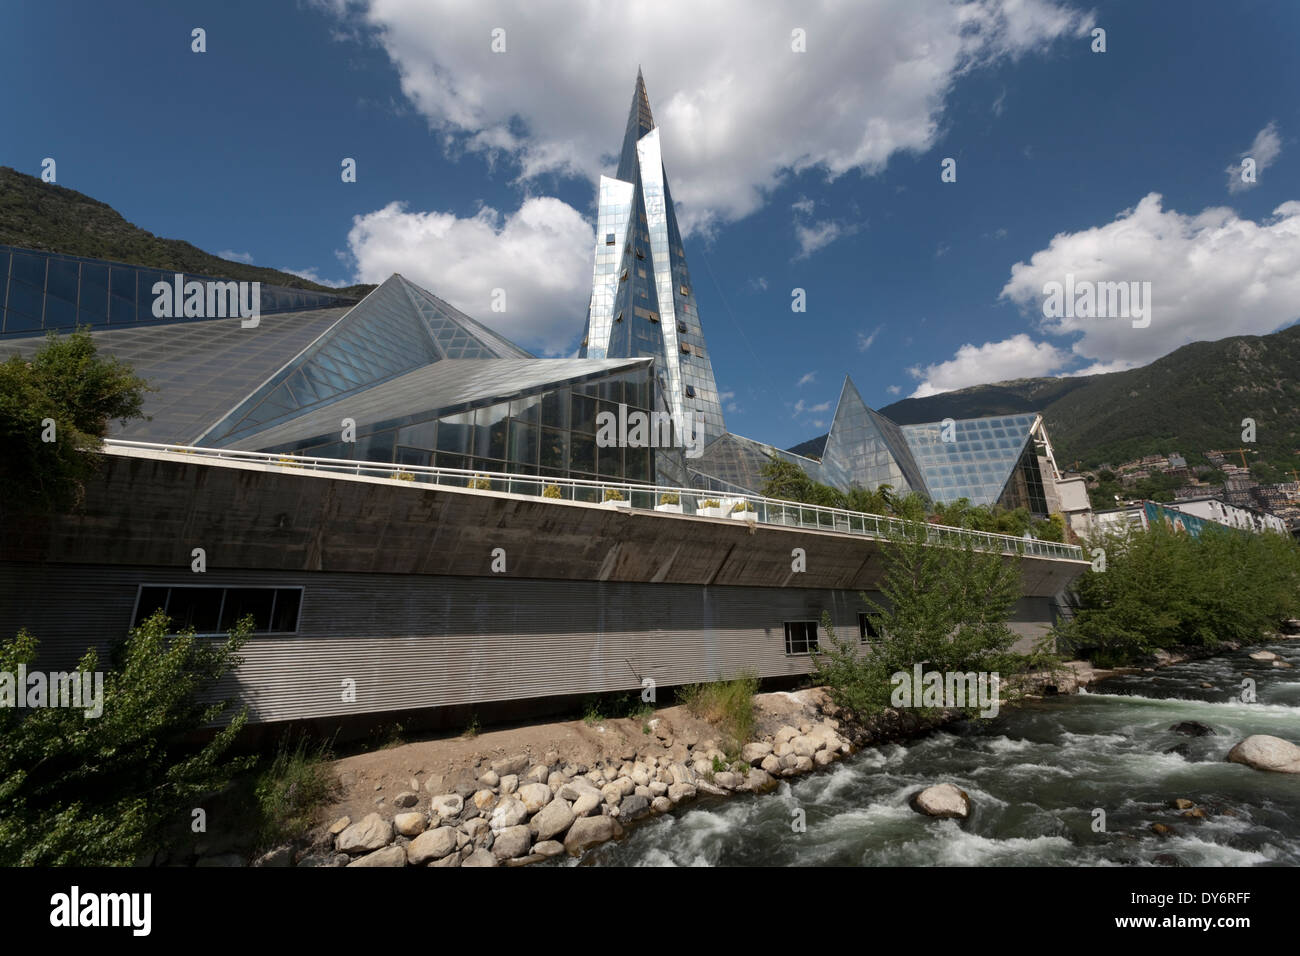 The Glass Covered Spa Caldea And The River Valira In The Country